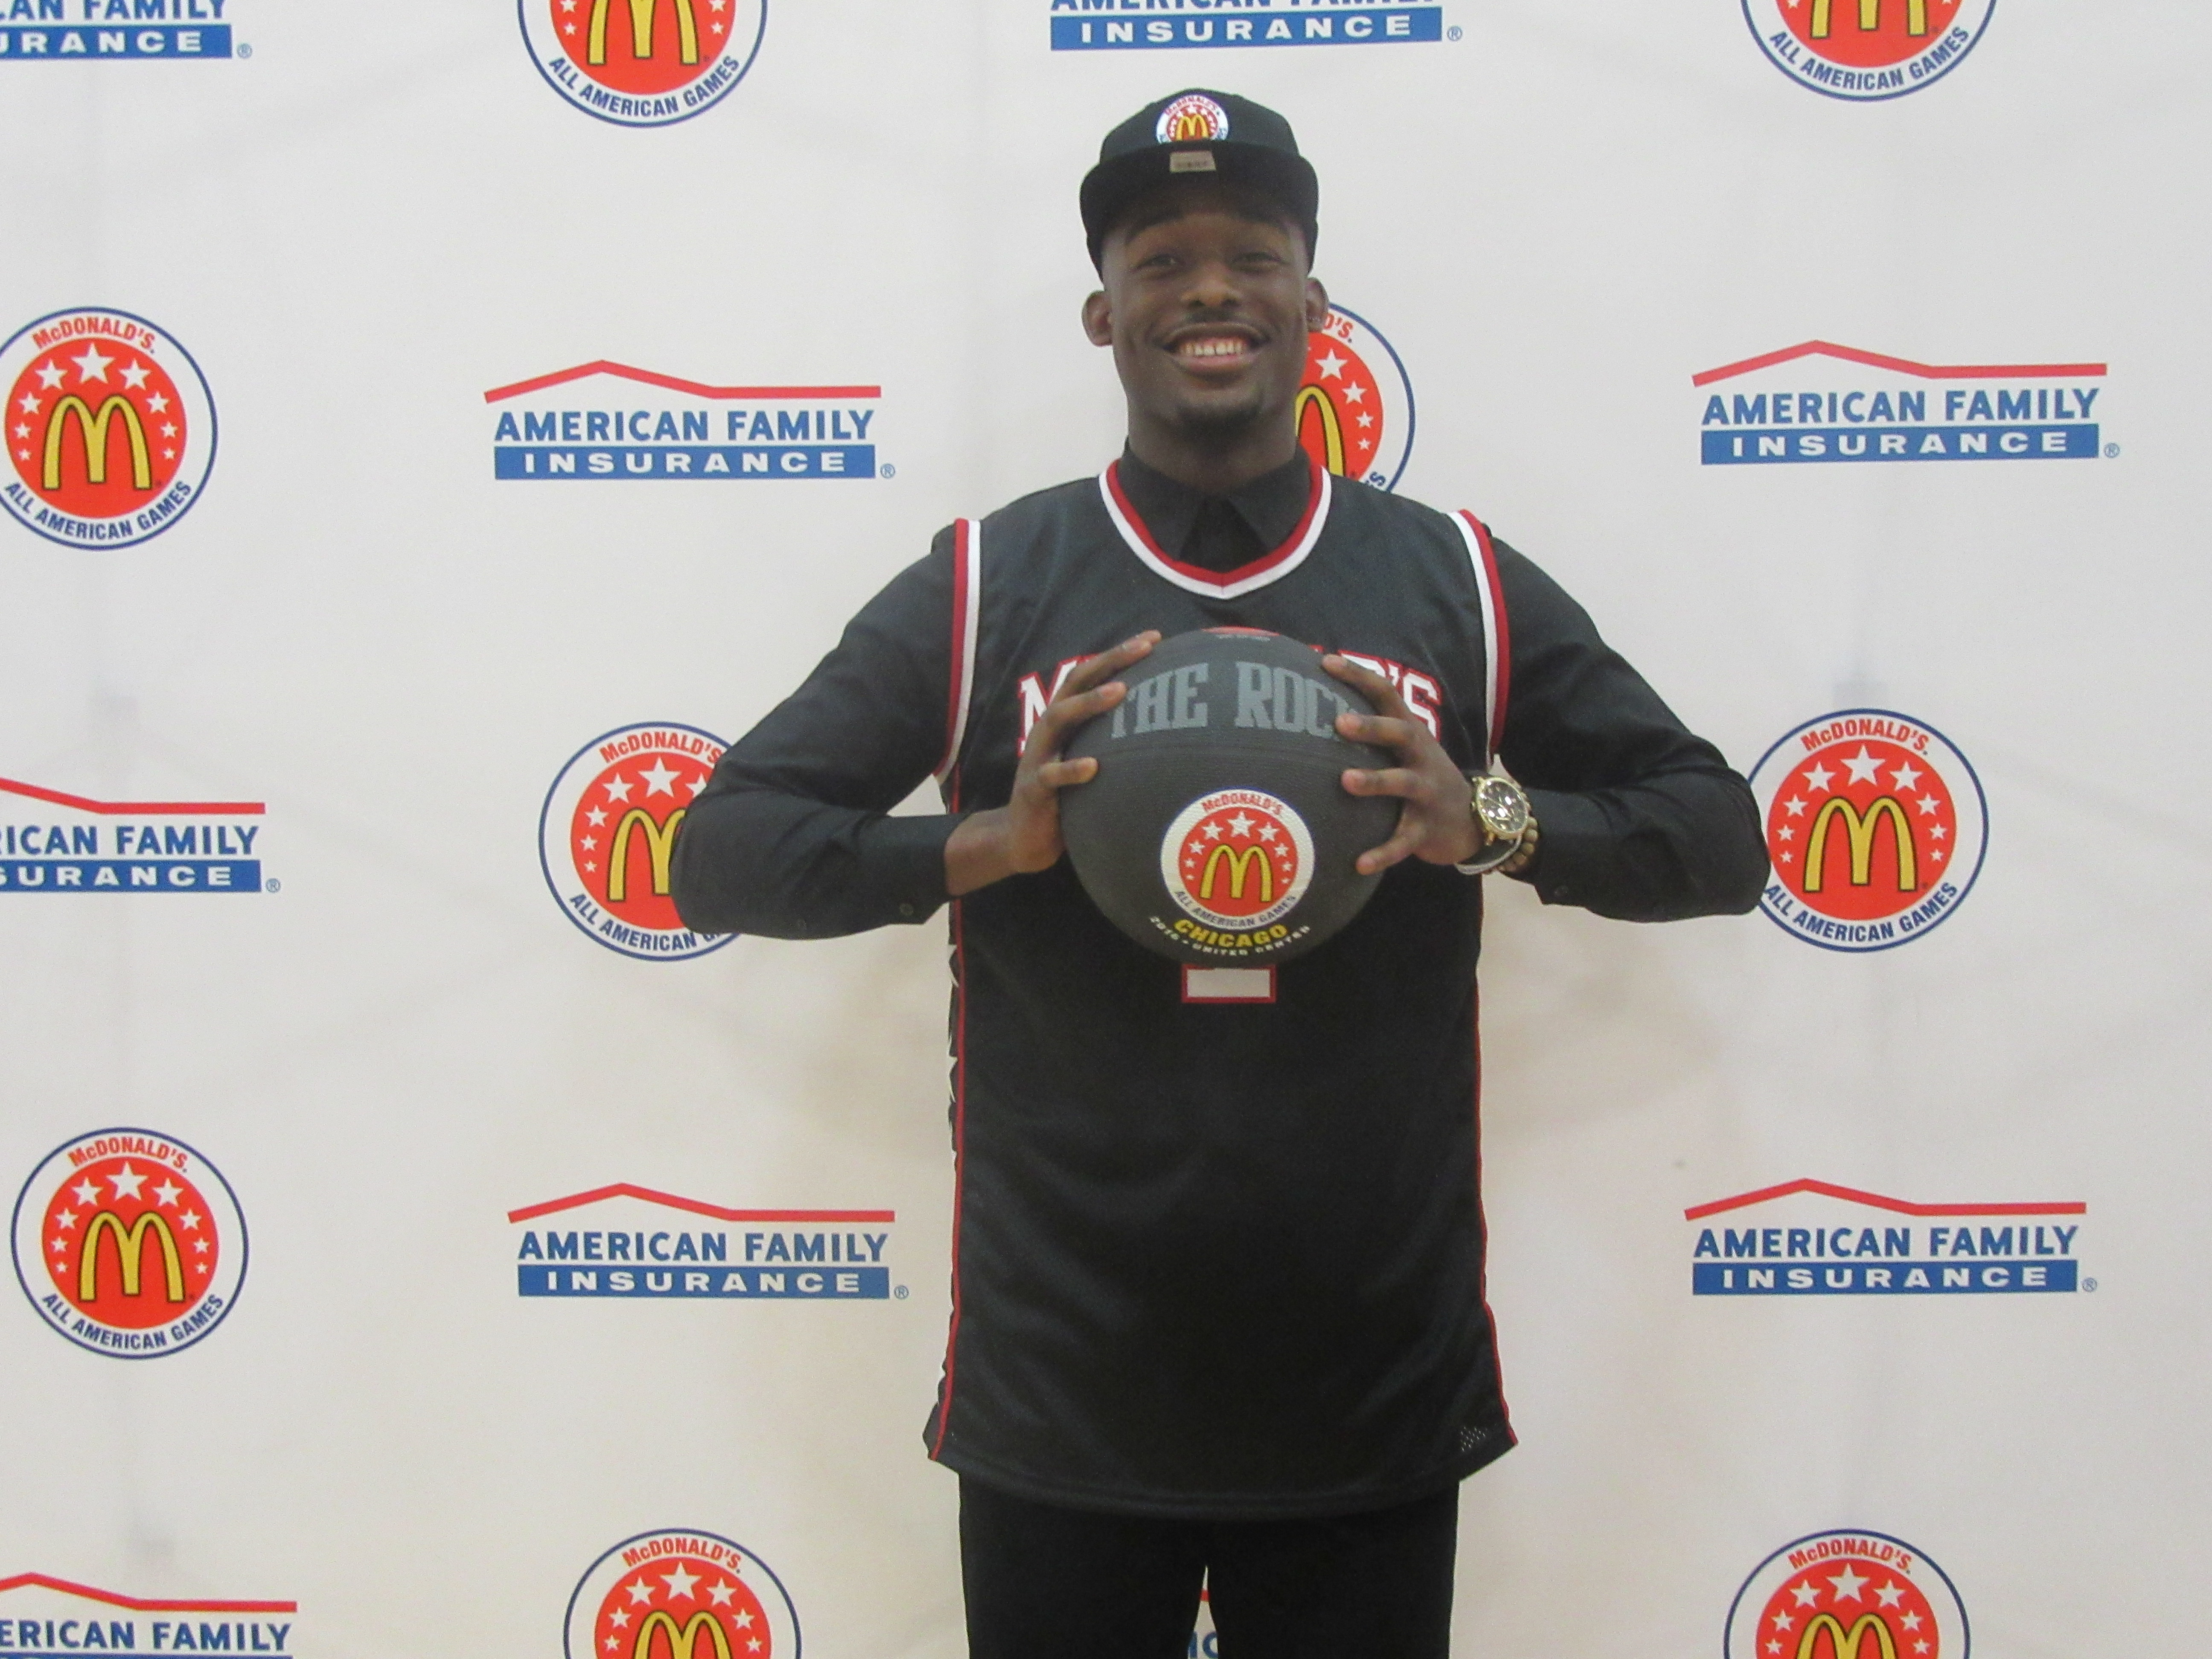 Josh Langord poses after receiving his McDonald's All American jersey (Photo: McDonald's All American Game)